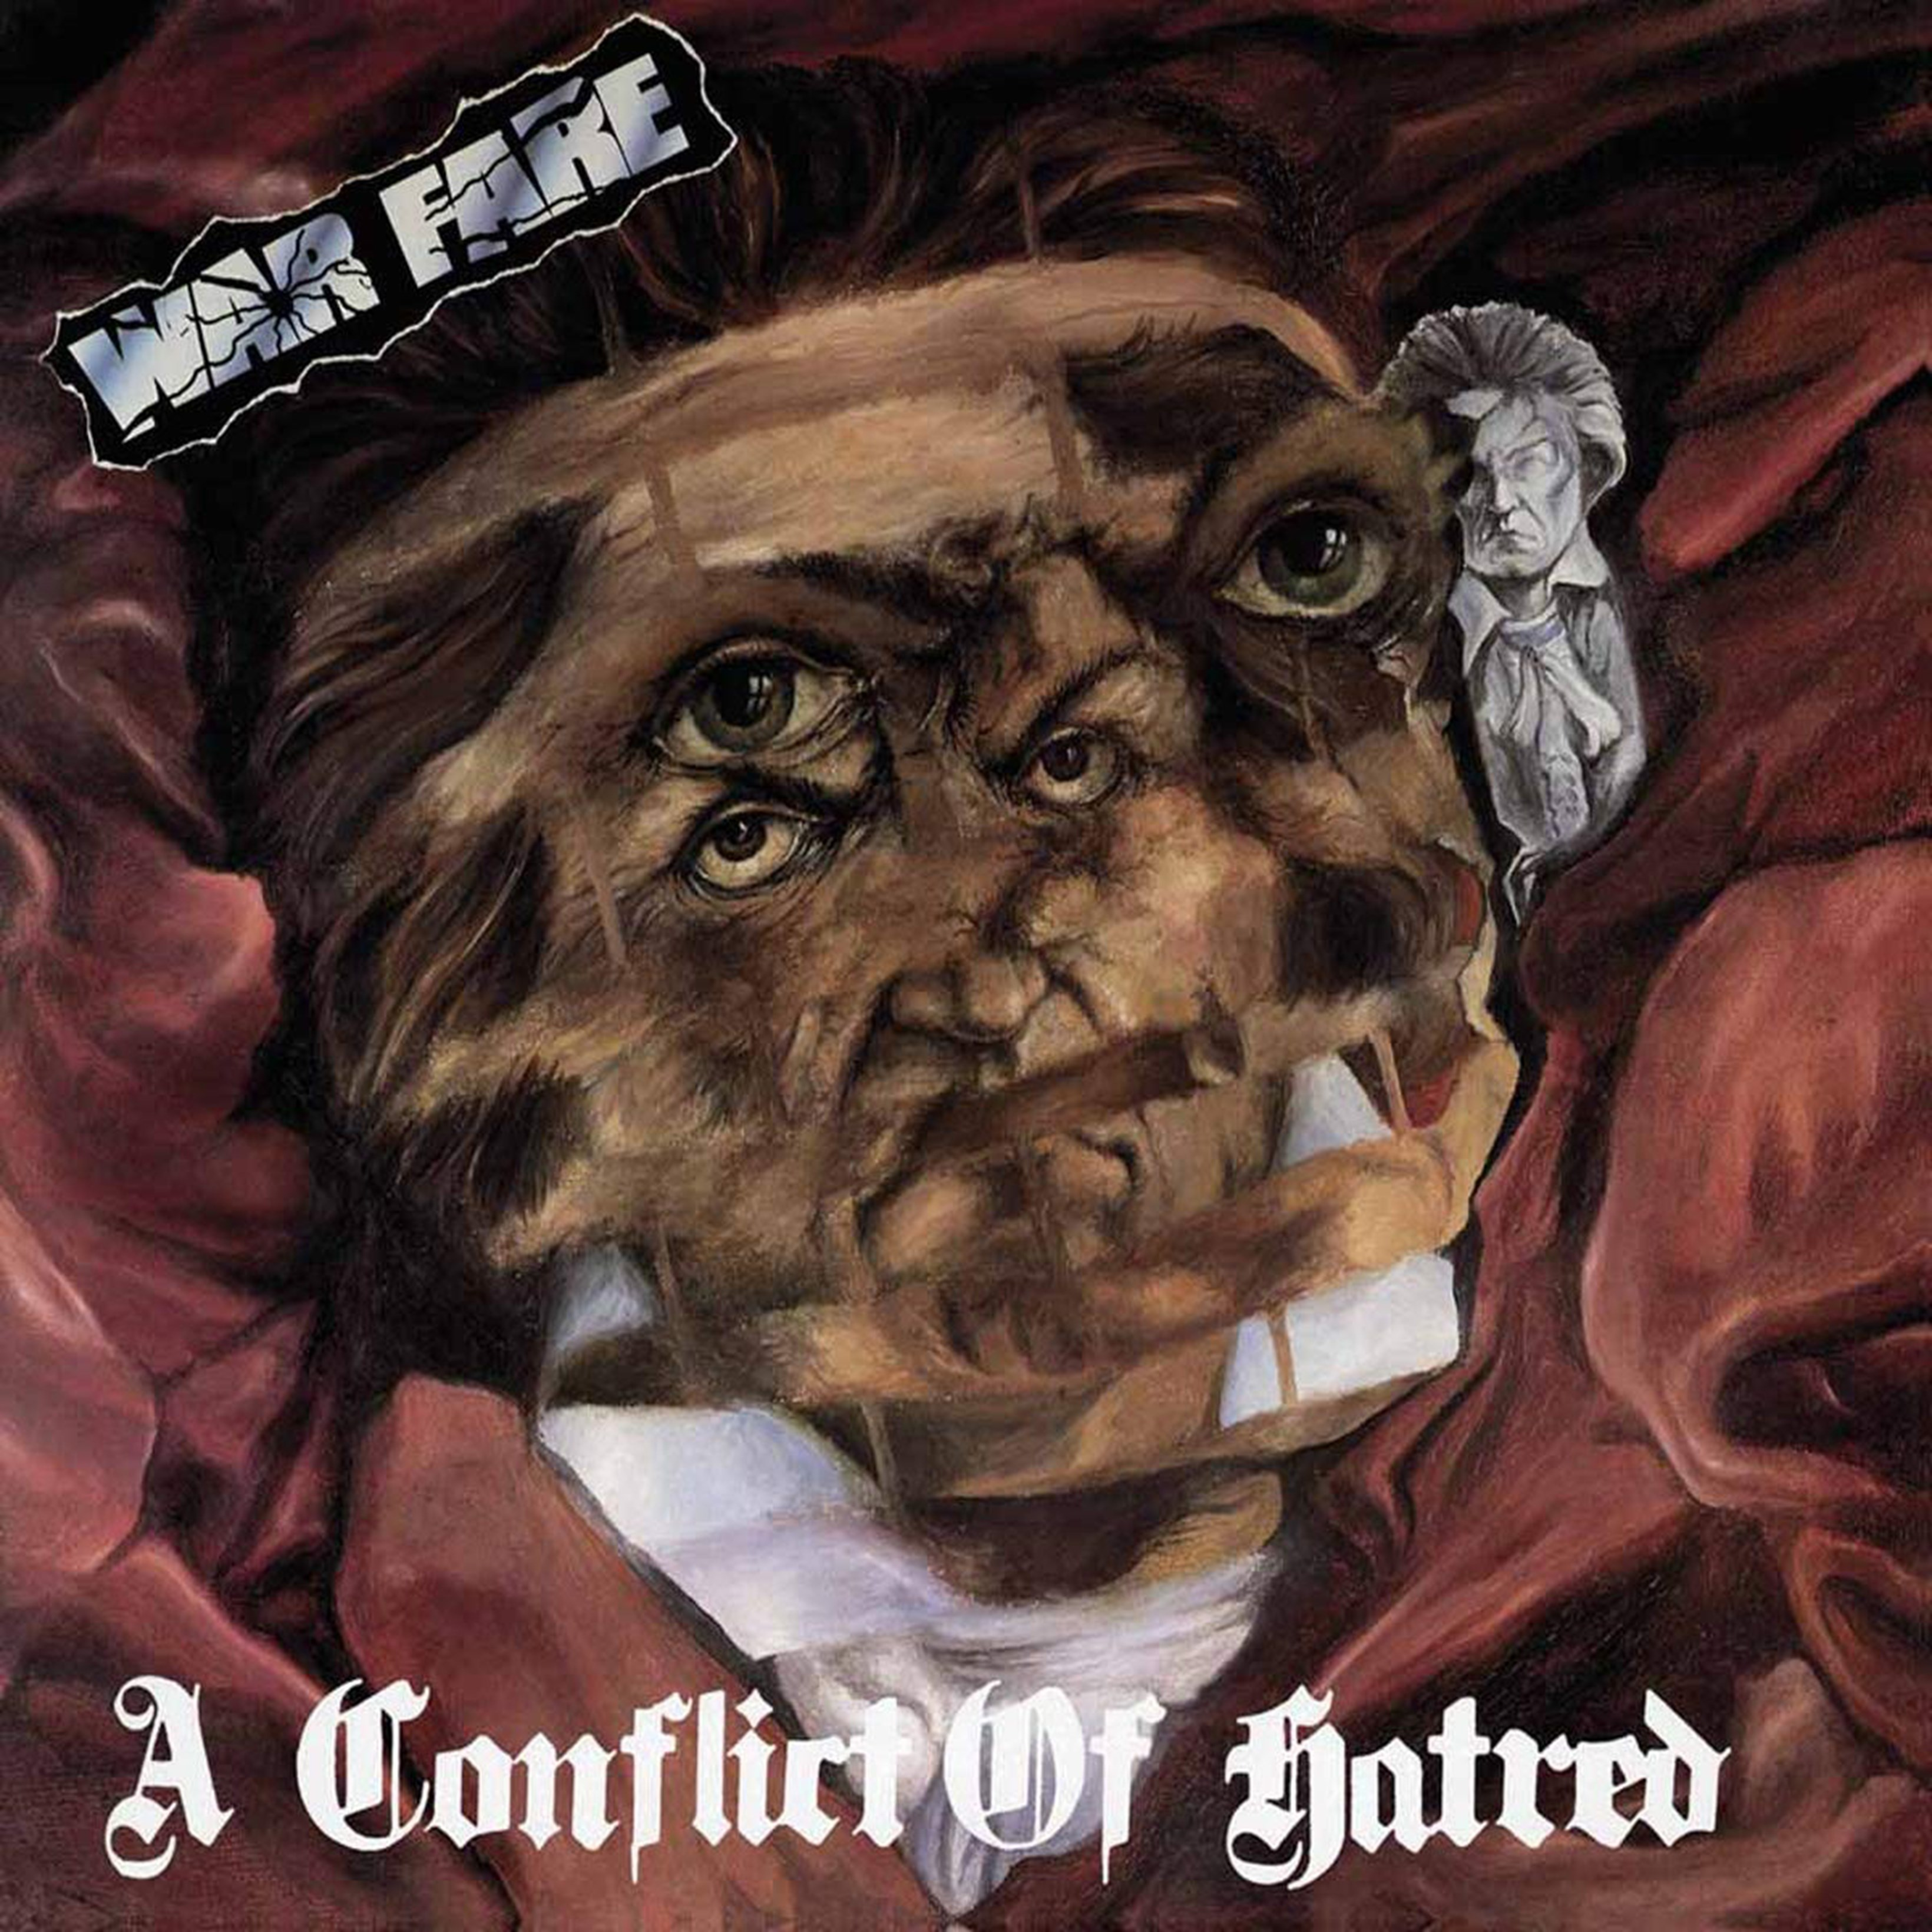 A Conflict of Hatred - 1